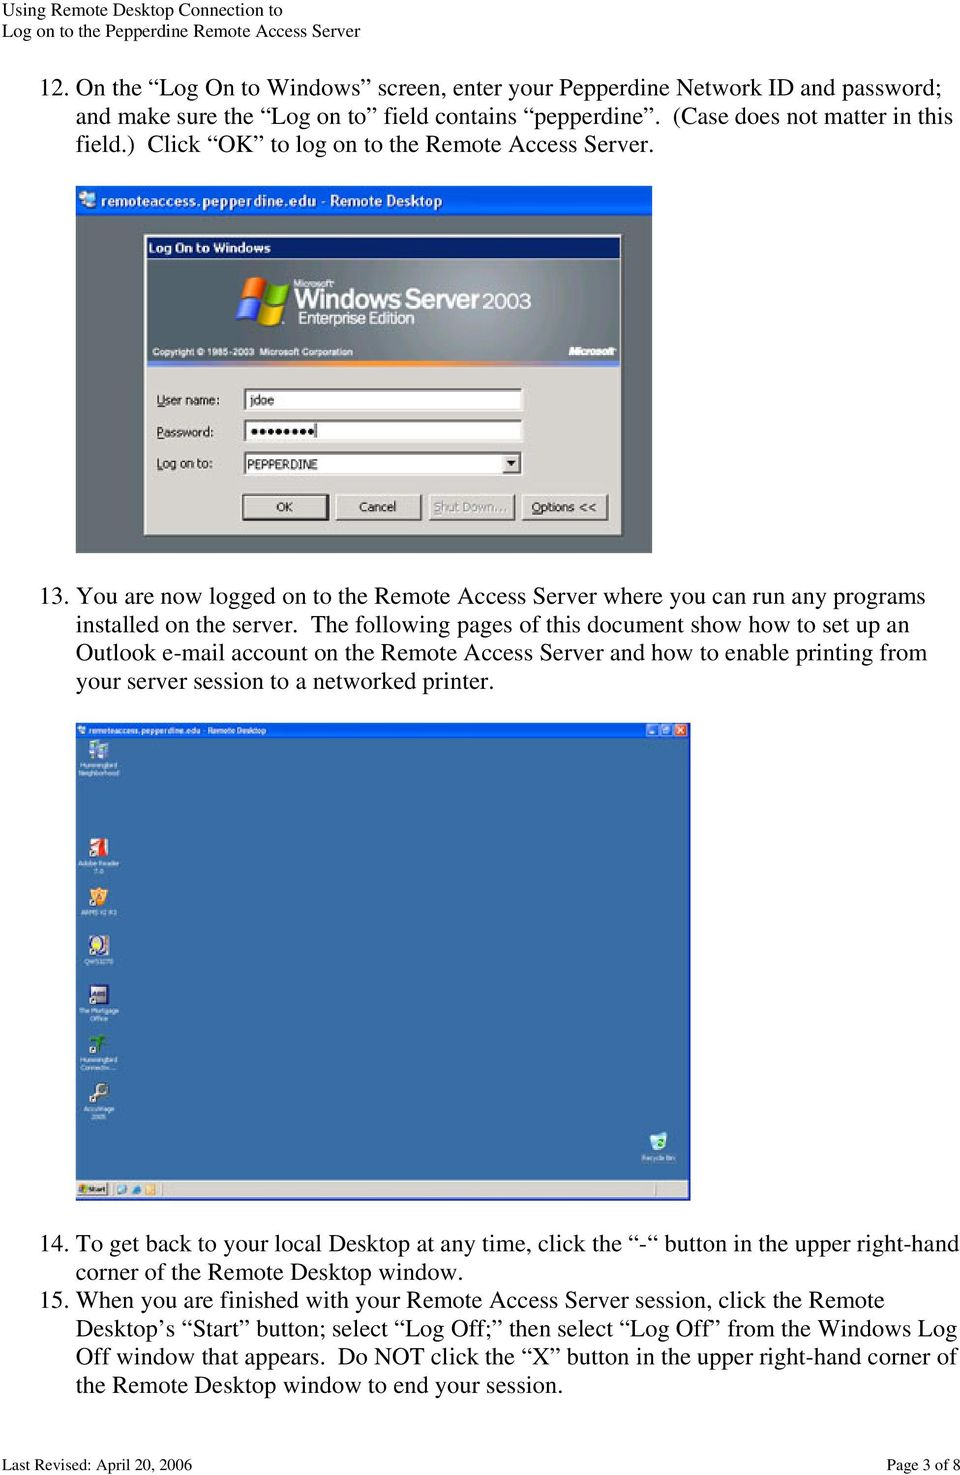 The following pages of this document show how to set up an Outlook e-mail account on the Remote Access Server and how to enable printing from your server session to a networked printer. 14.